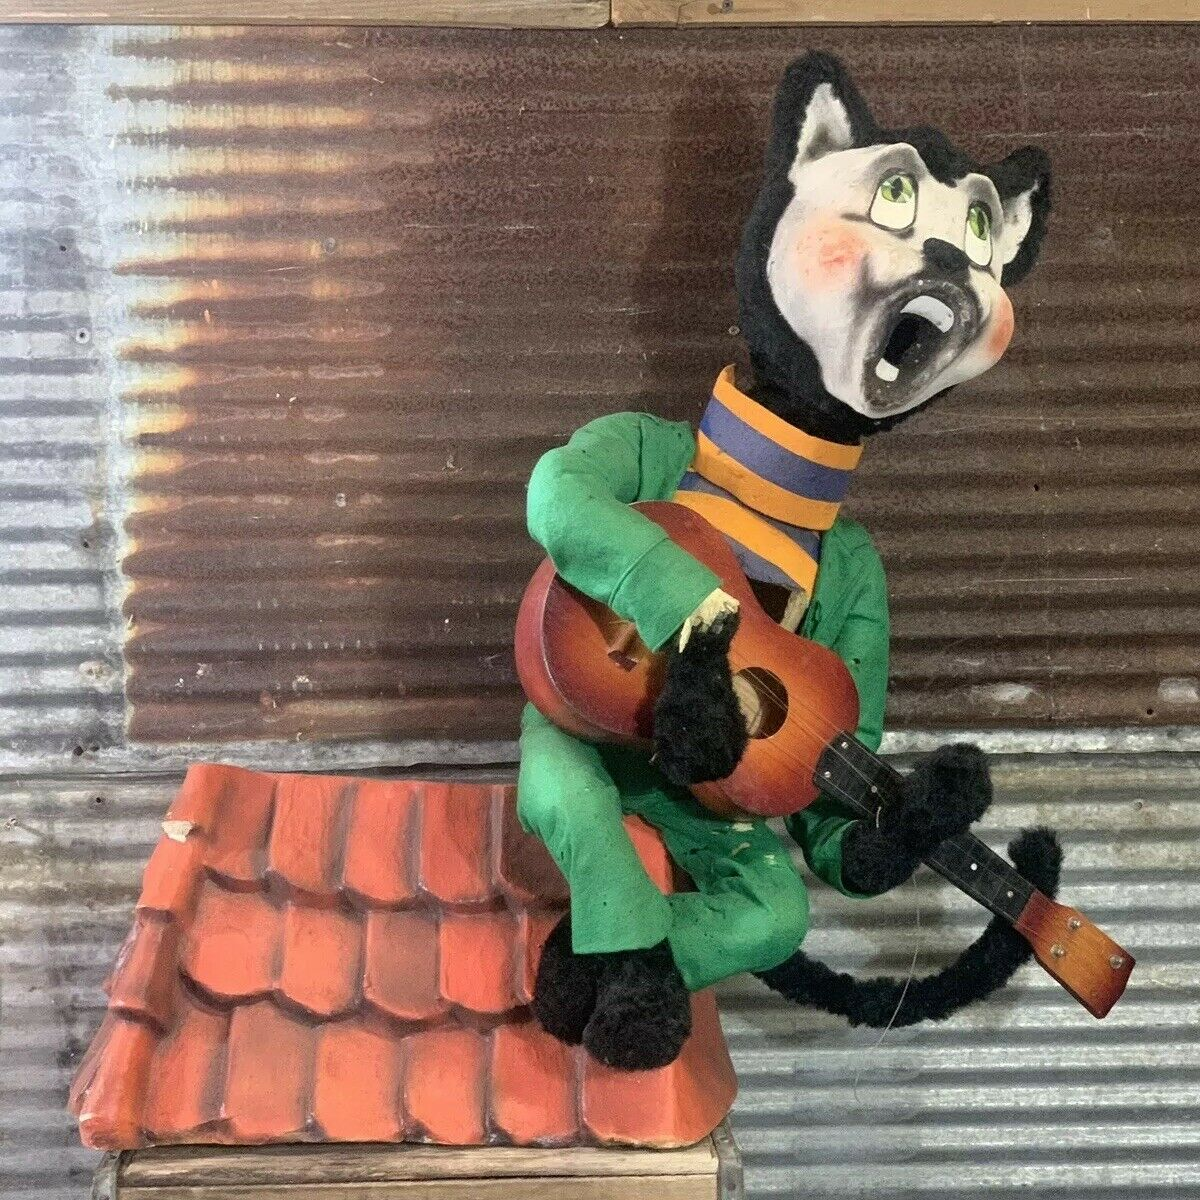 Vtg 40s 50s Mechanical Animatronic Cat On Hot Tin Roof Playing Guitar Sign WORKS